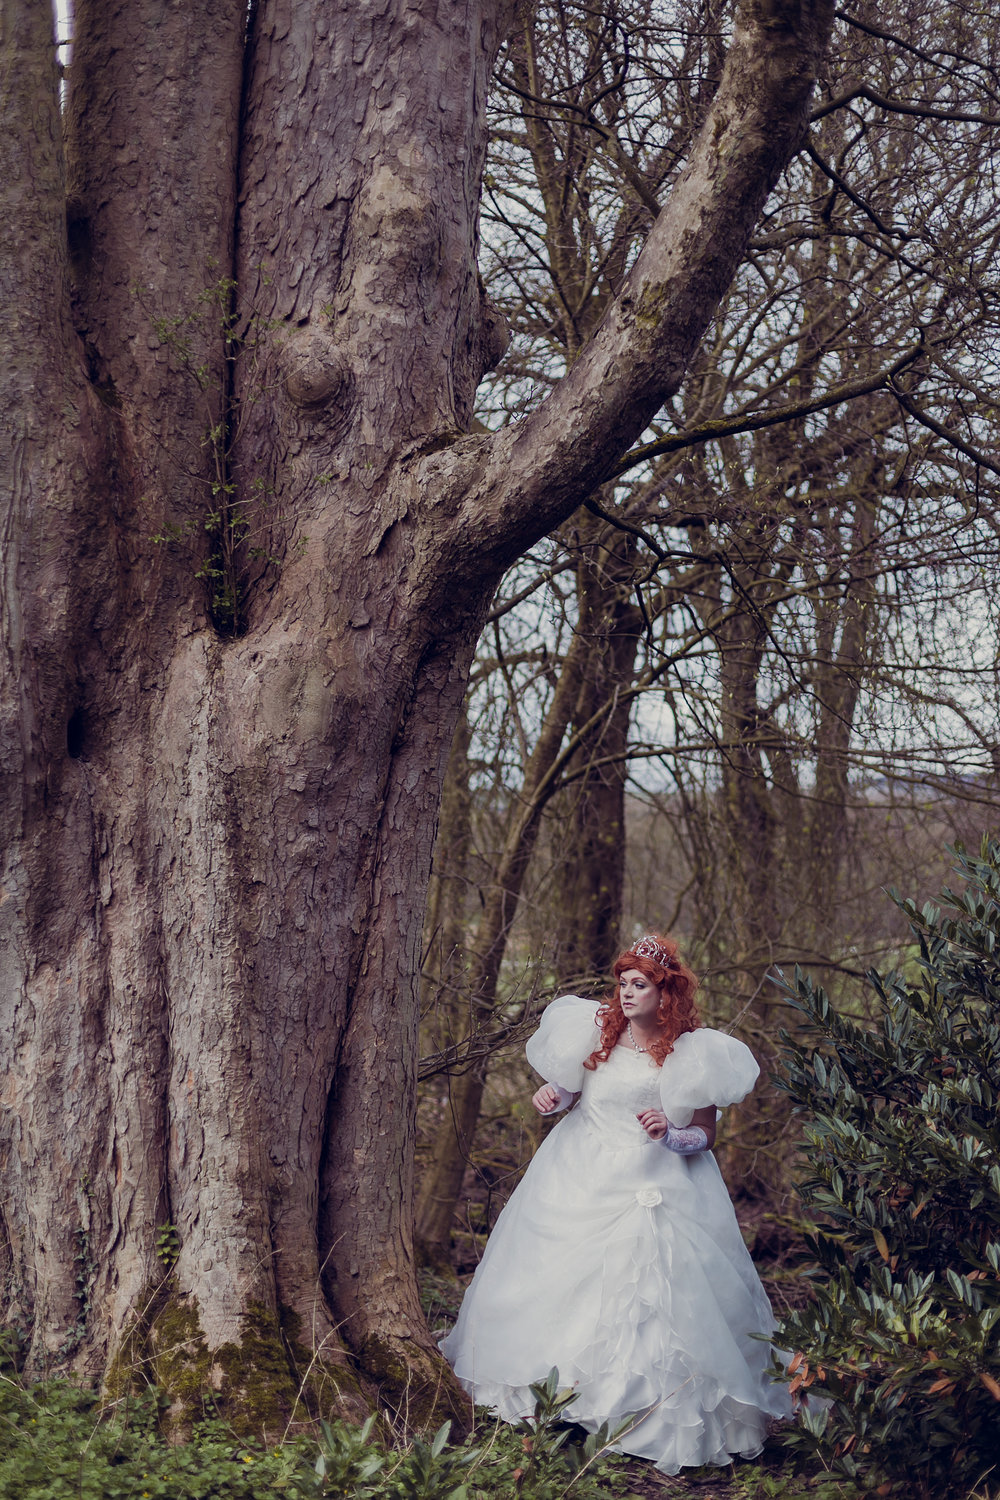 disney princess cosplay cross dressing cross dresser makeover location photography portrait lancashire gawthorpe hall